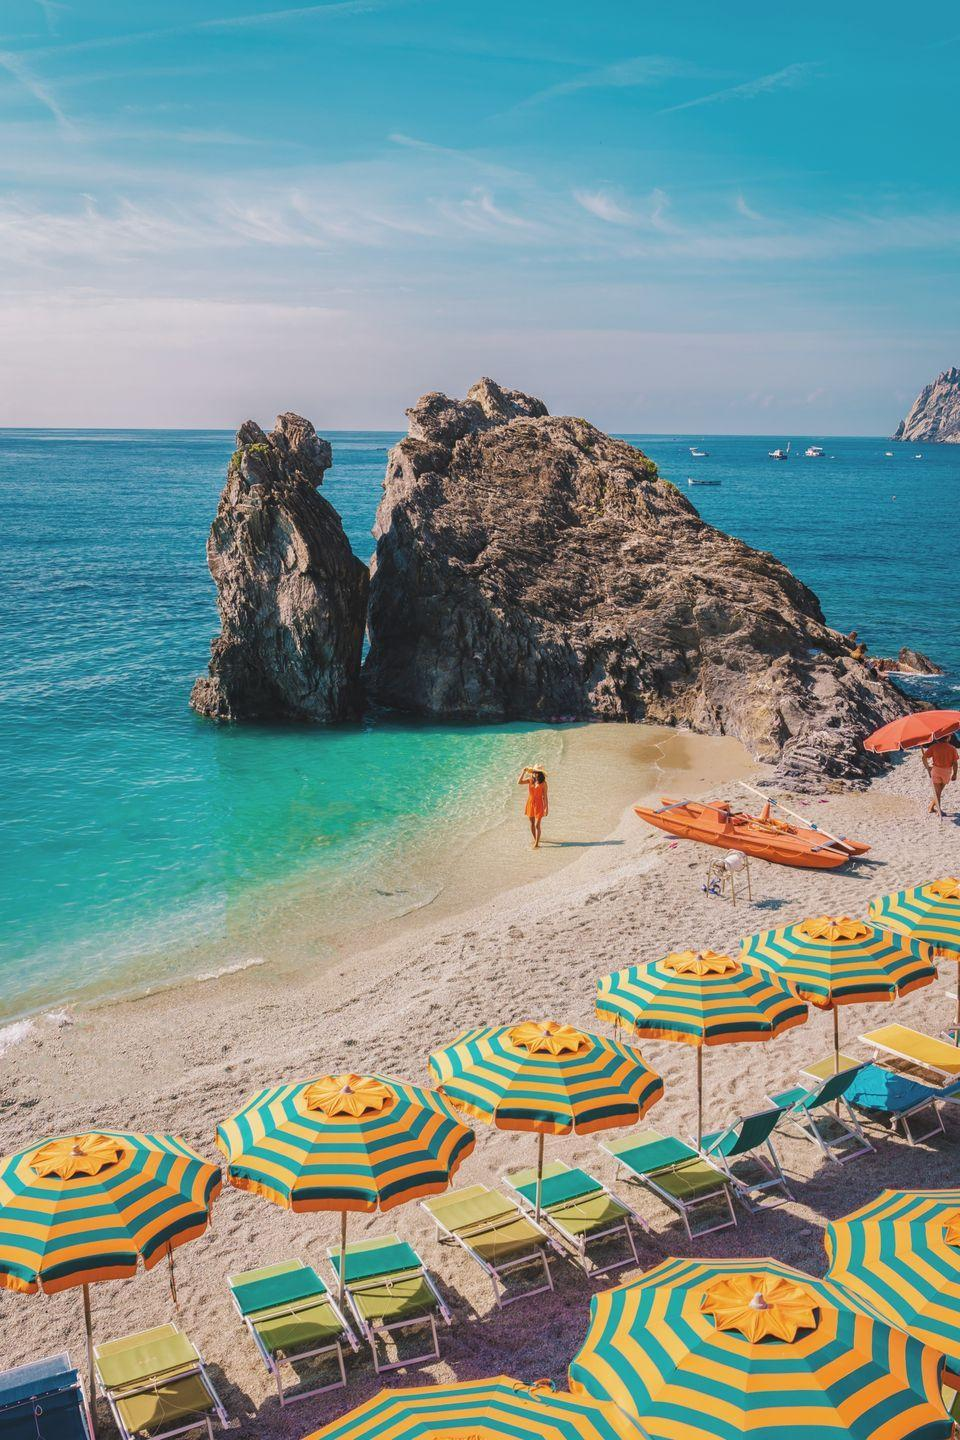 <p>Home to the Cinque Terre's only sand beach, Monterosso al Mare is <em>the</em> spot to post up for a long day of sunbathing on the Italian Riviera.</p>